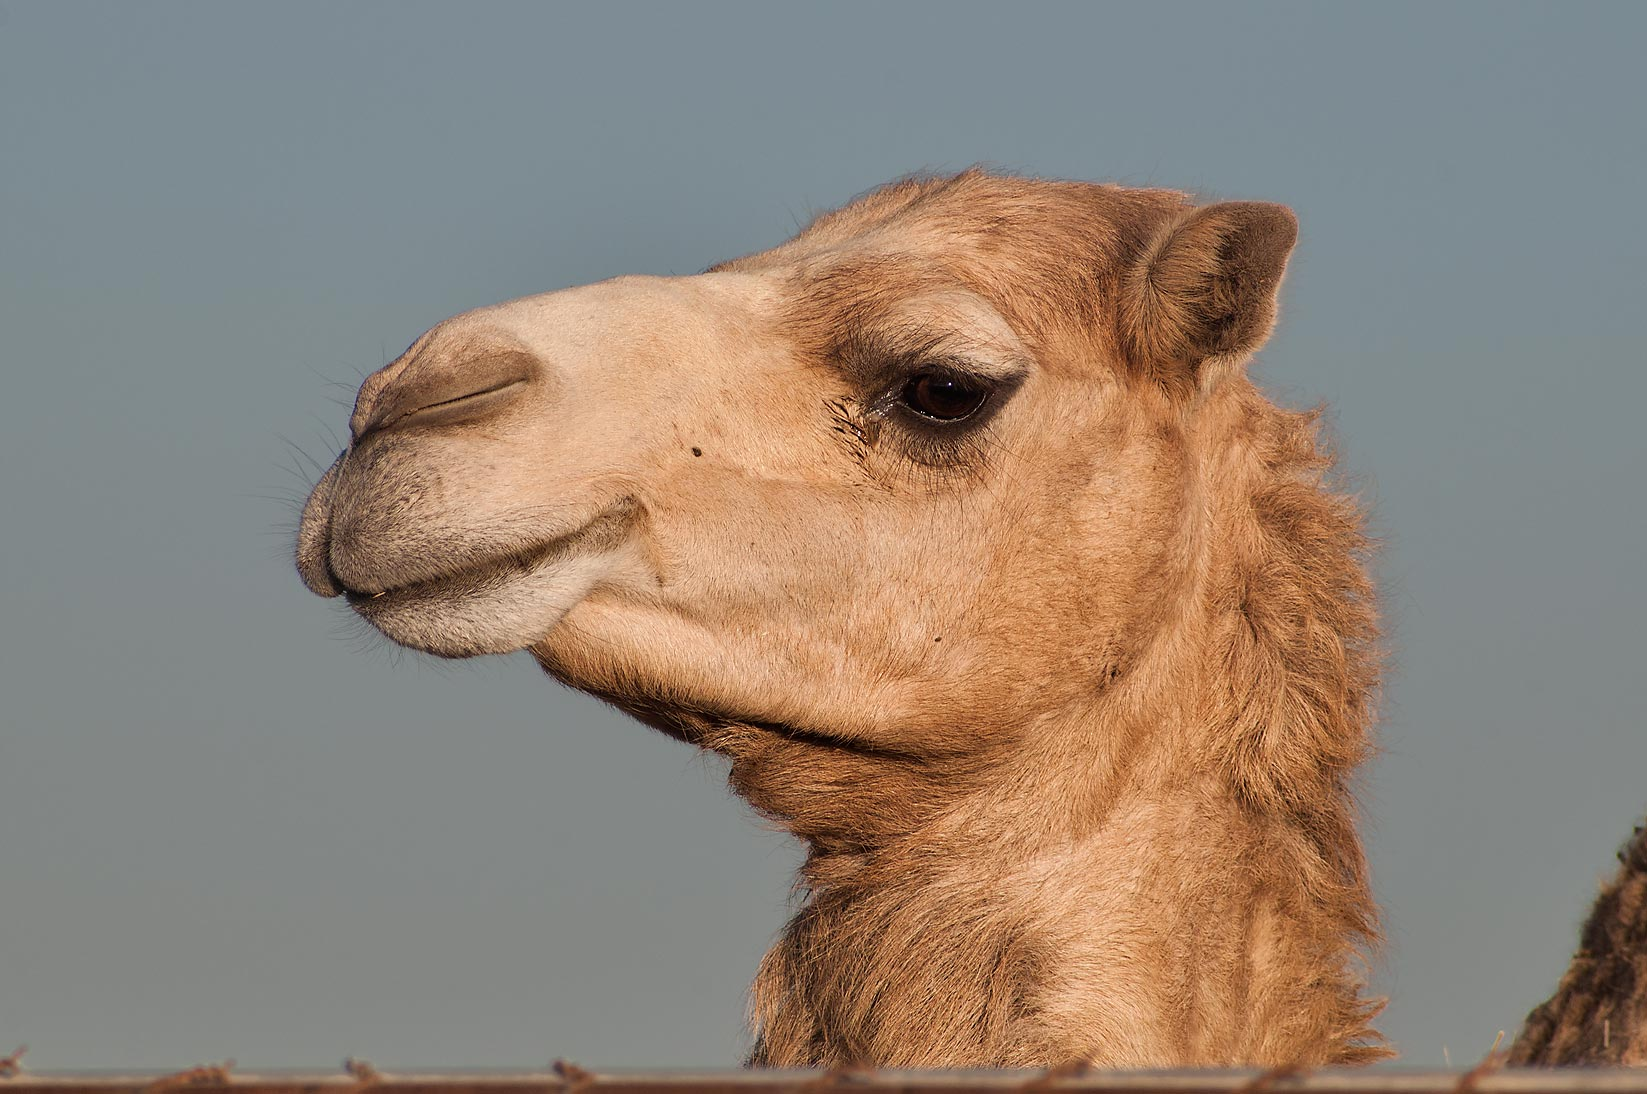 Camel's head in Animal Market, Wholesale Markets area. Doha, Qatar